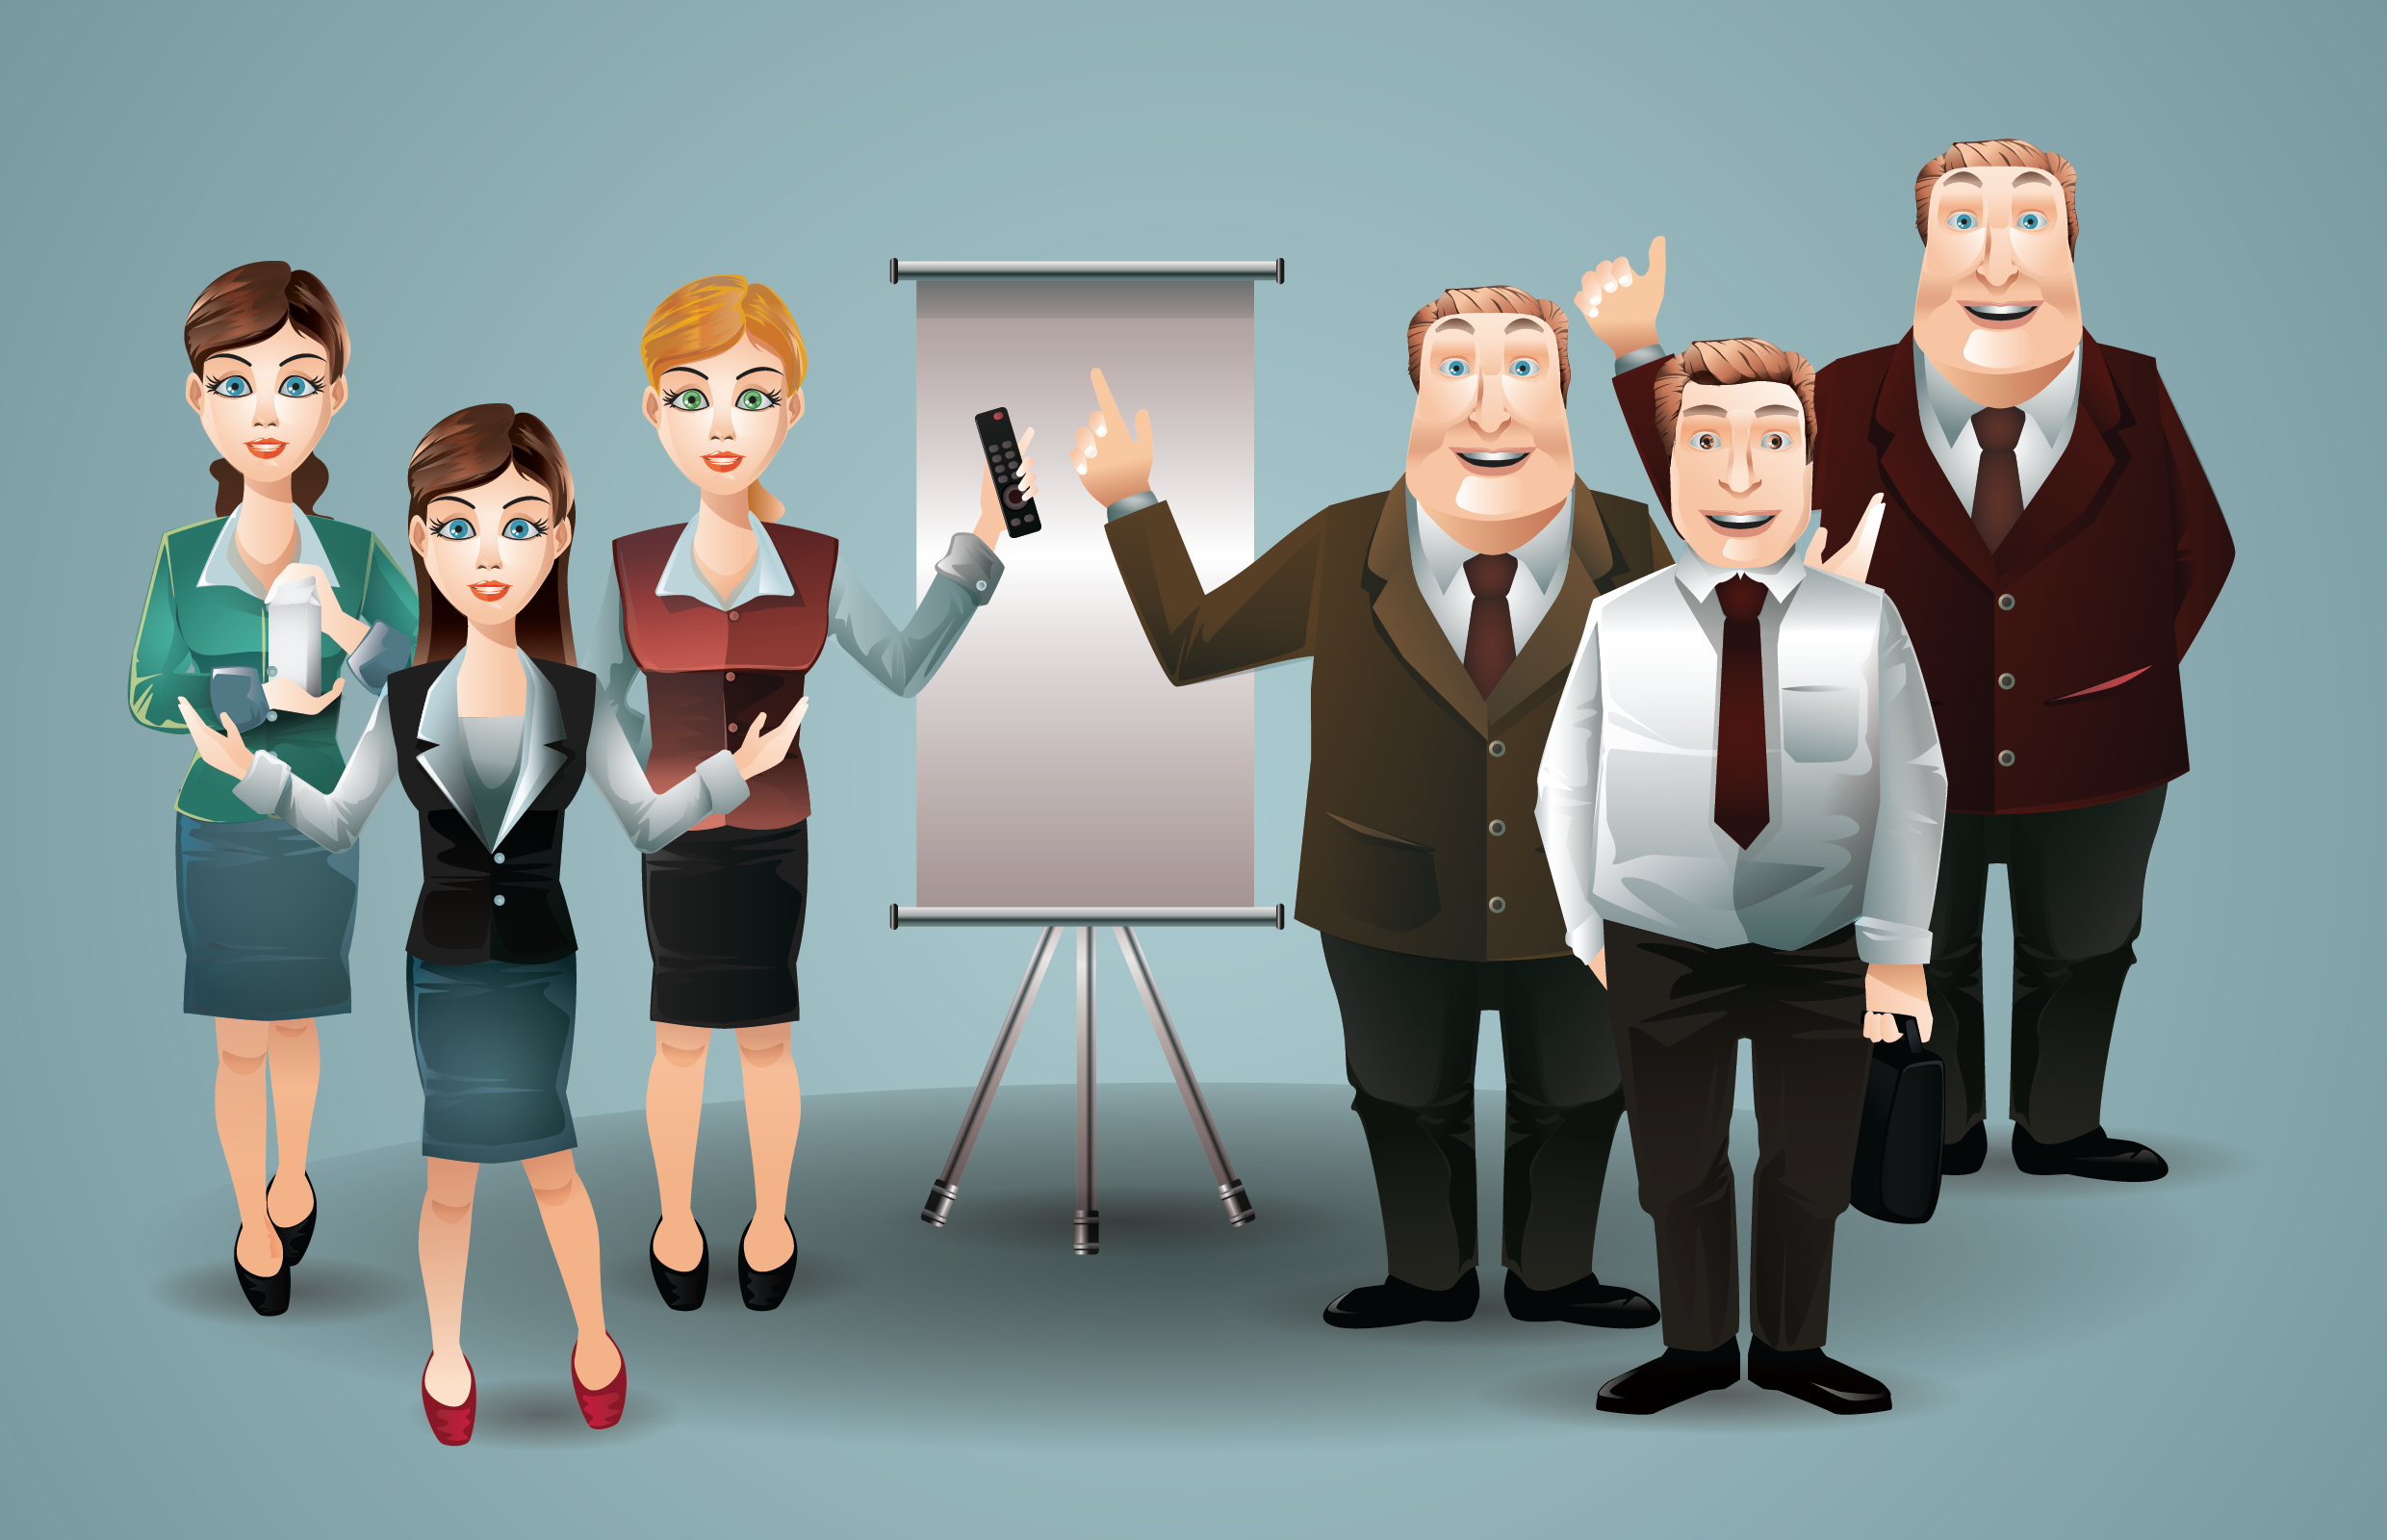 10 Mistakes to Avoid in Presentations